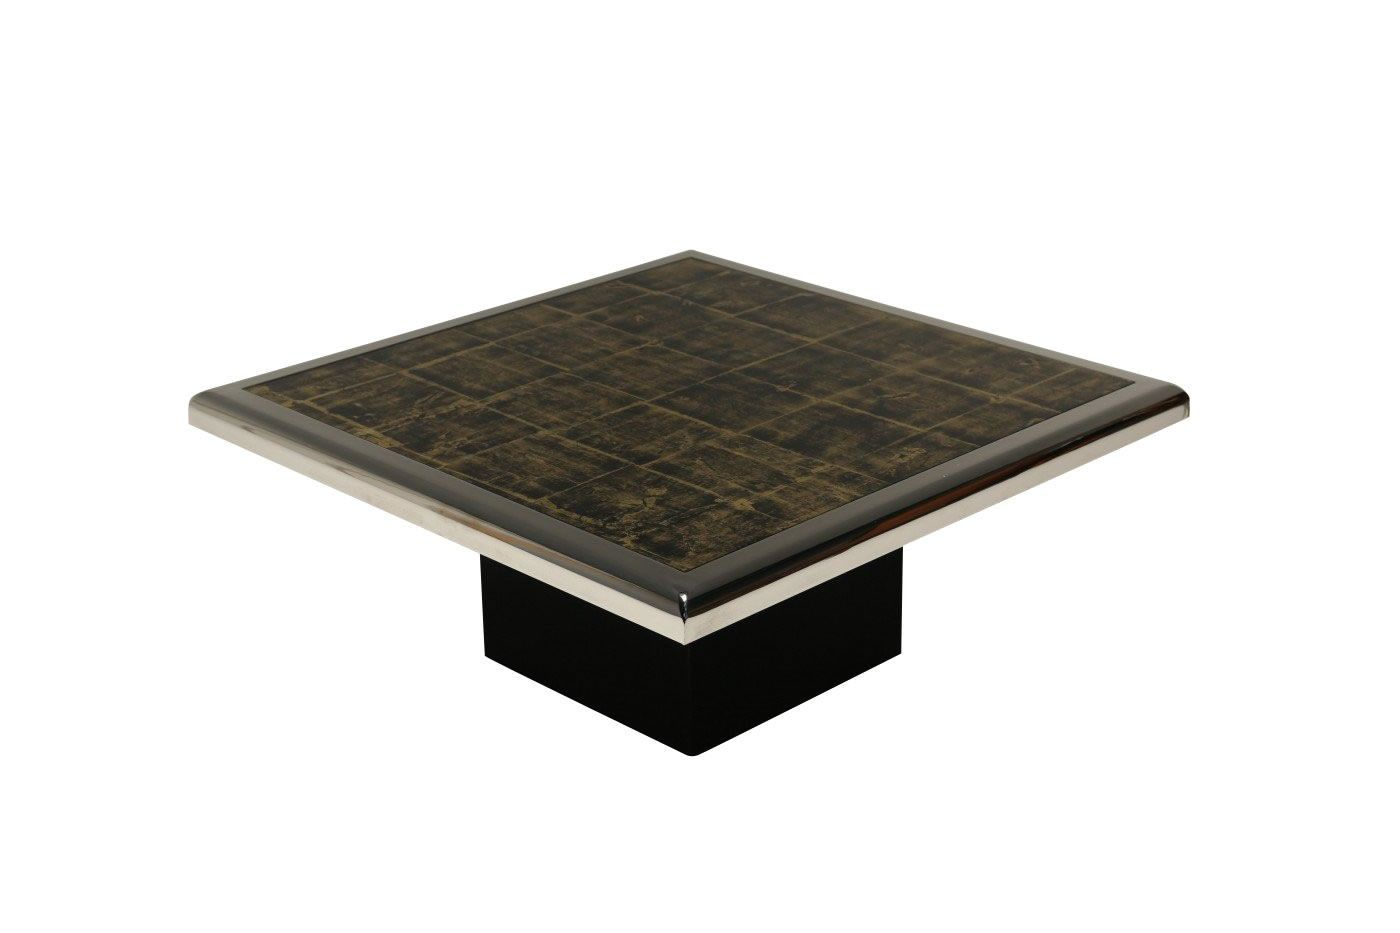 Floating Coffee Table Black And Gold Floating Coffee Table In Chrome From Belgochrom For